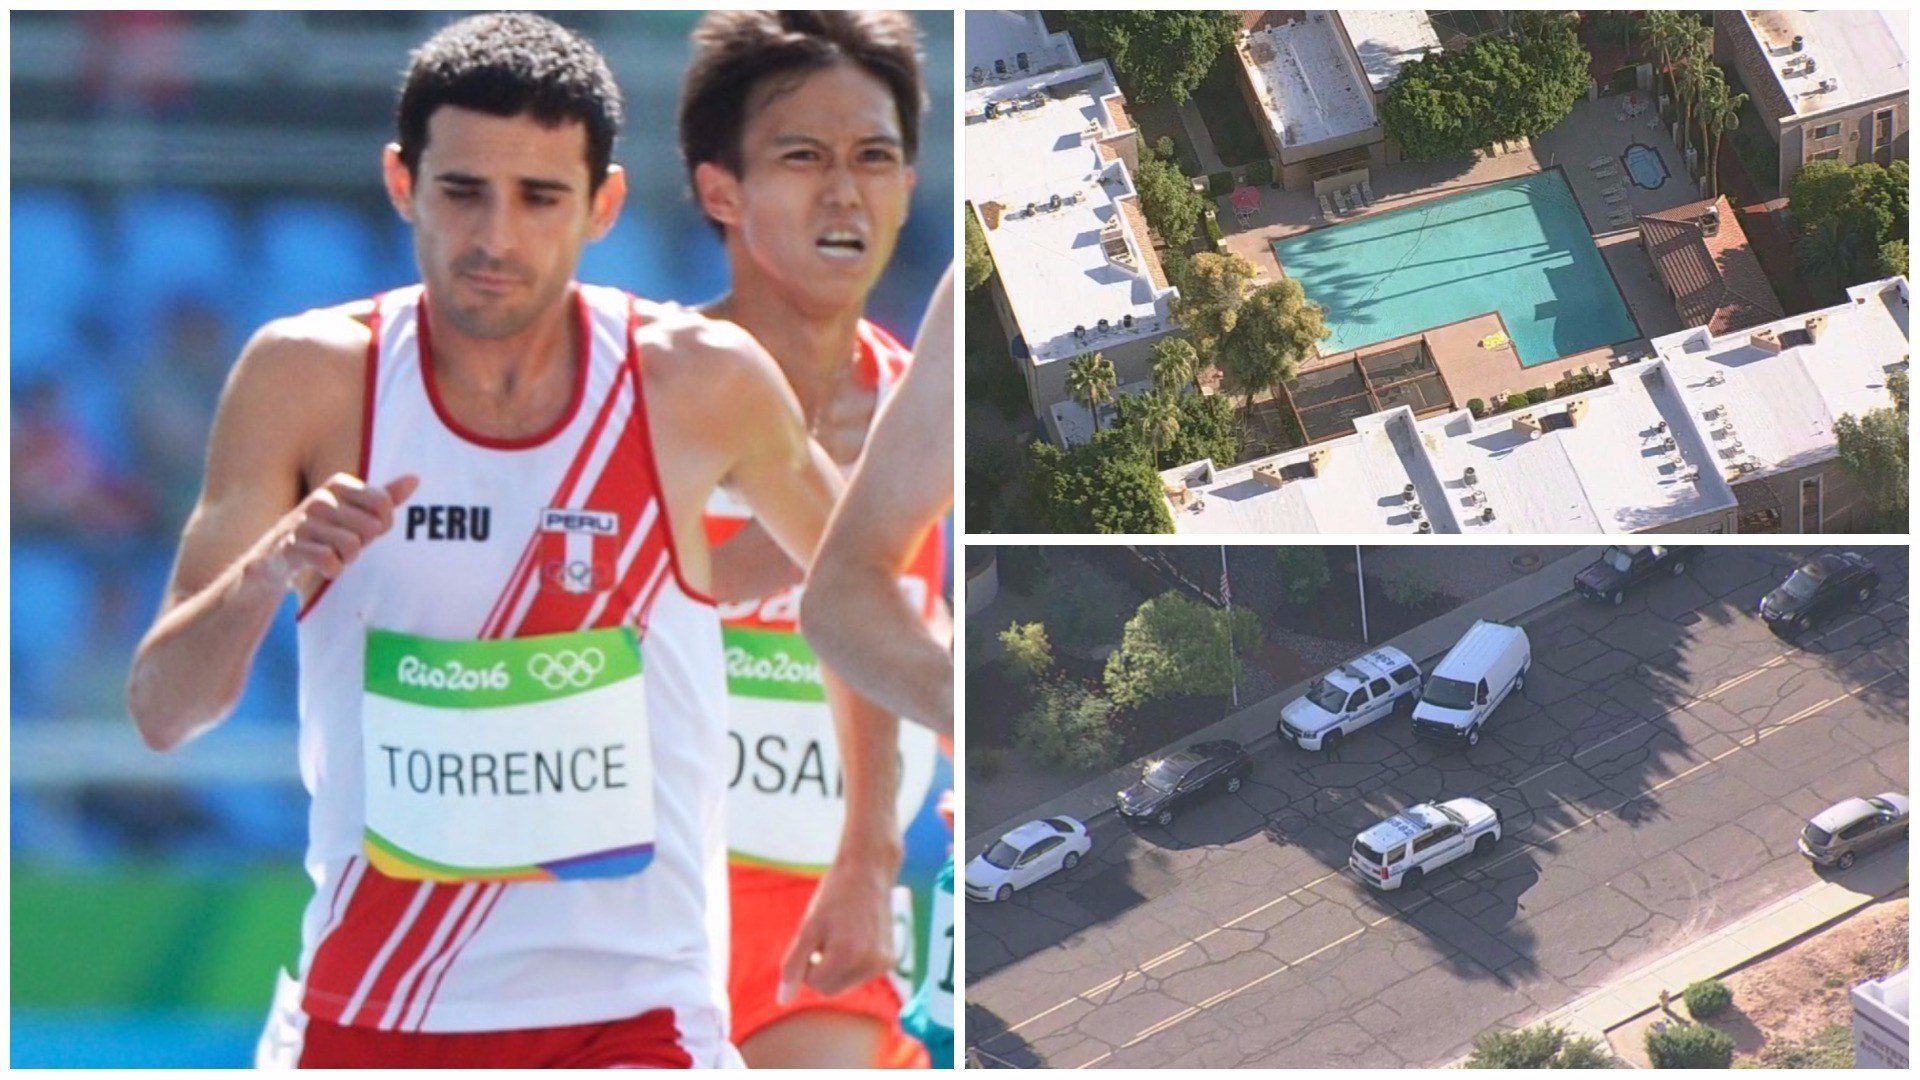 David Torrence, Olympic Runner, Found Dead in Pool